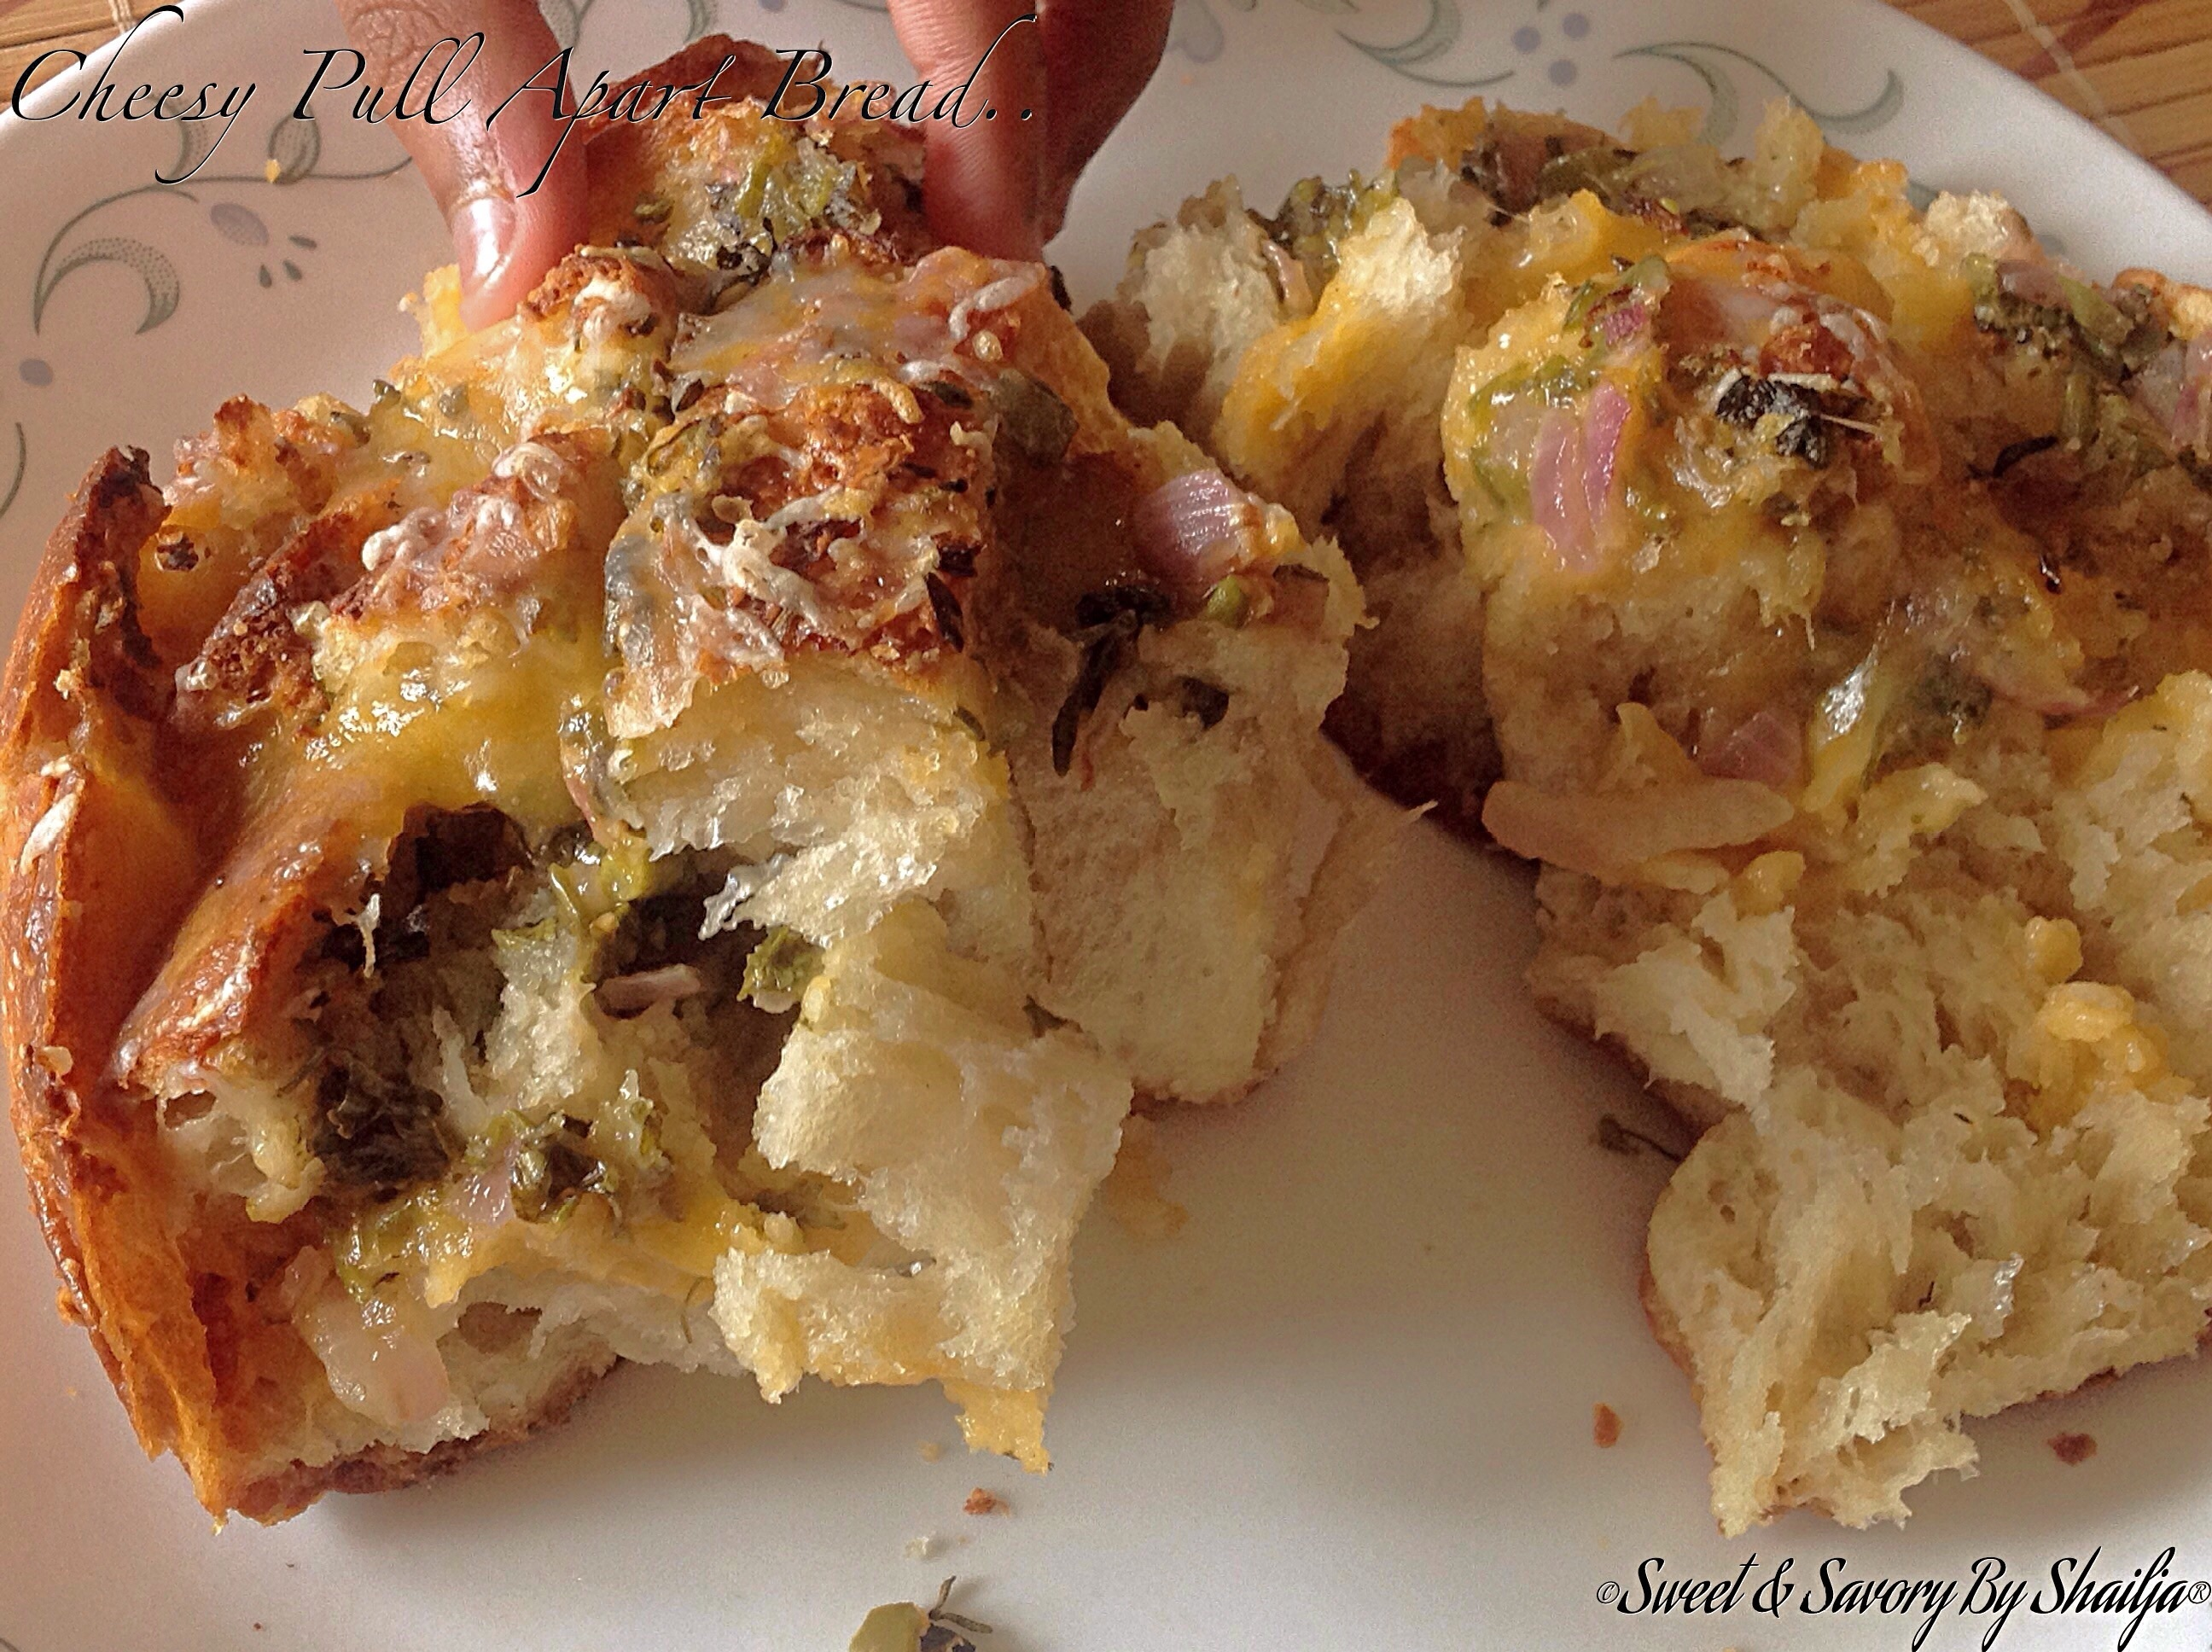 Cheesy Jalapeño Onion Pull Apart Bread..